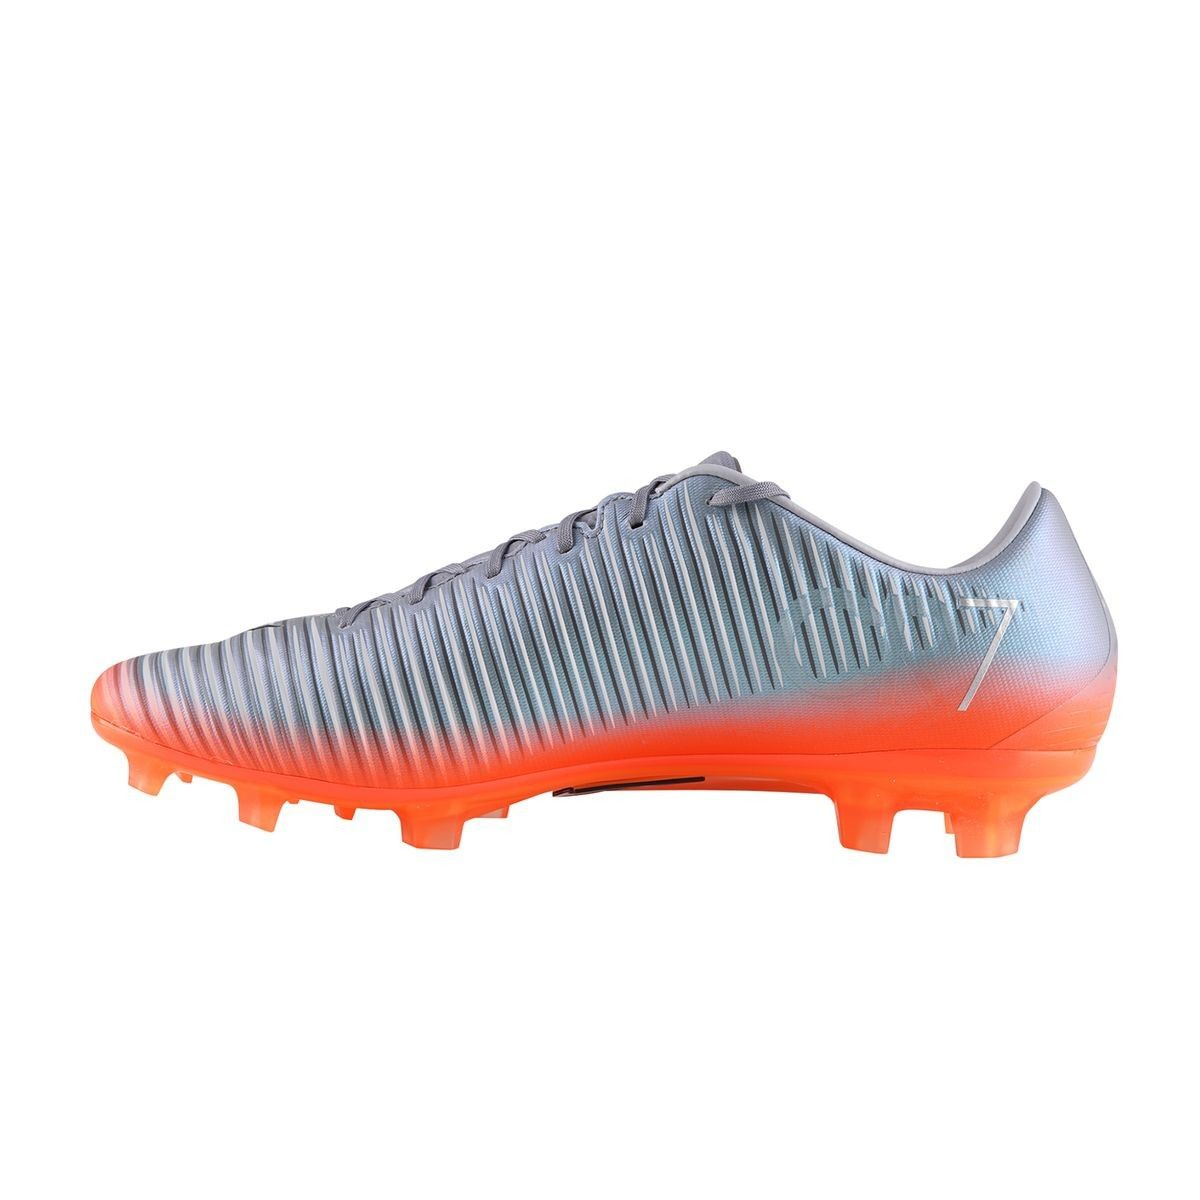 Chaussures Football Nike Mercurial Veloce Iii Cr7 Fg Gris